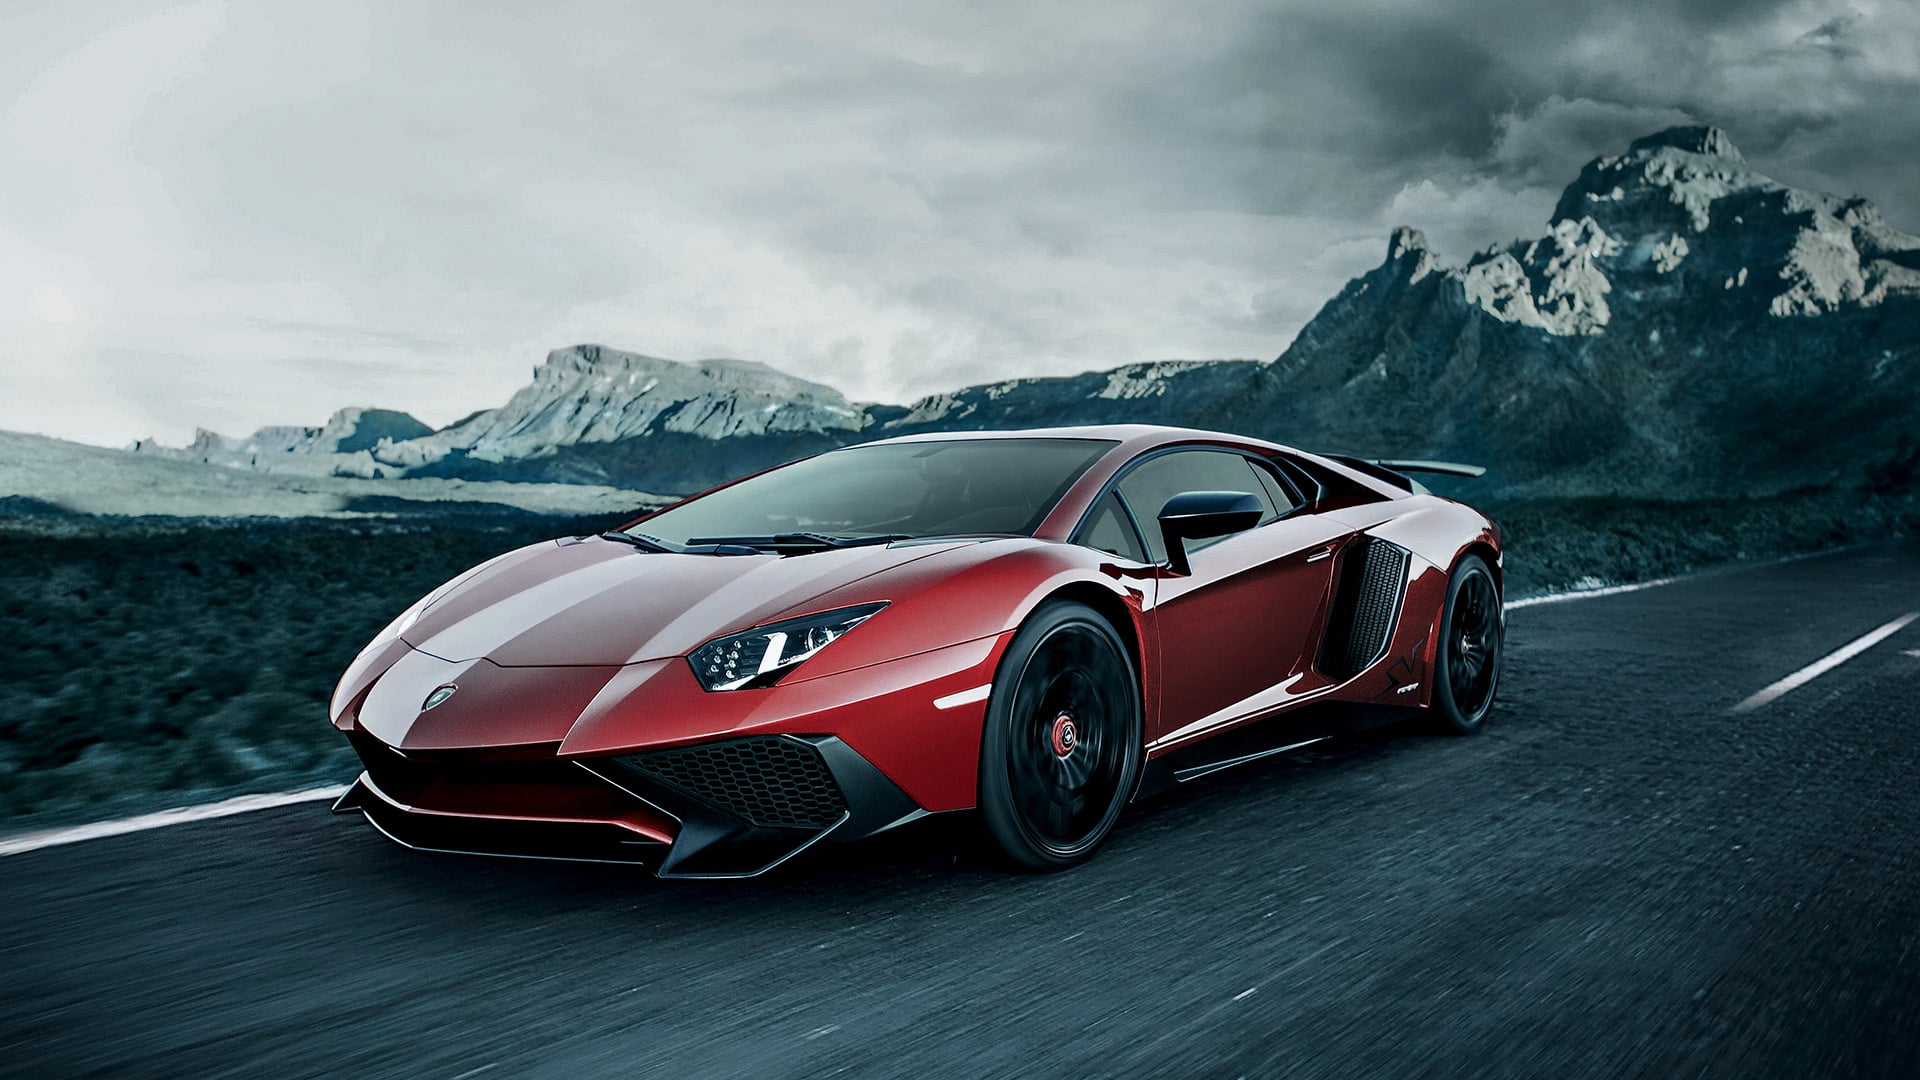 Lamborghini Aventador Superveloce Fotos Videos HD Wallpapers Download free images and photos [musssic.tk]